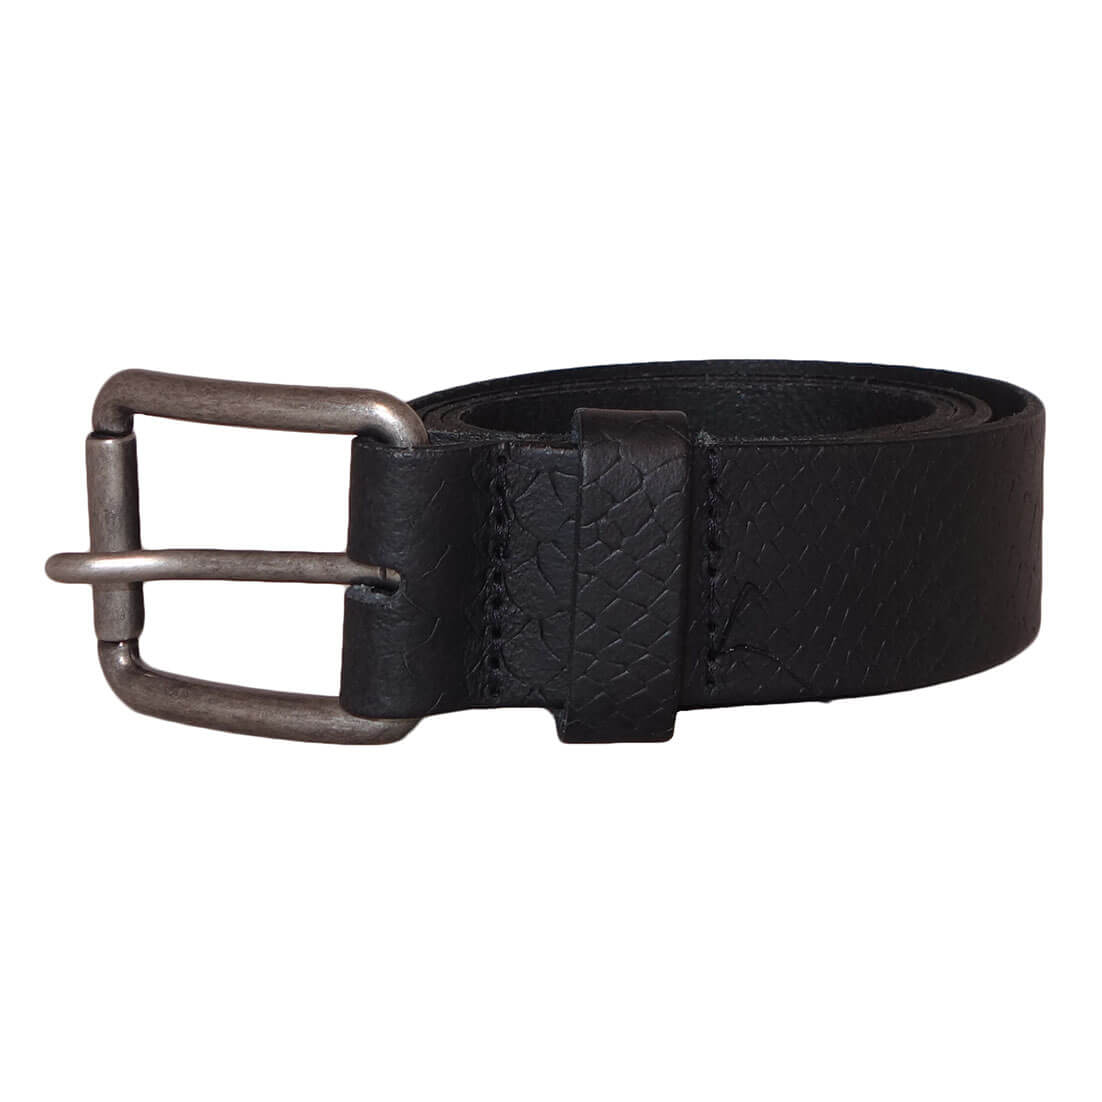 Mountain Belt Snake Riem Zwart 85-0